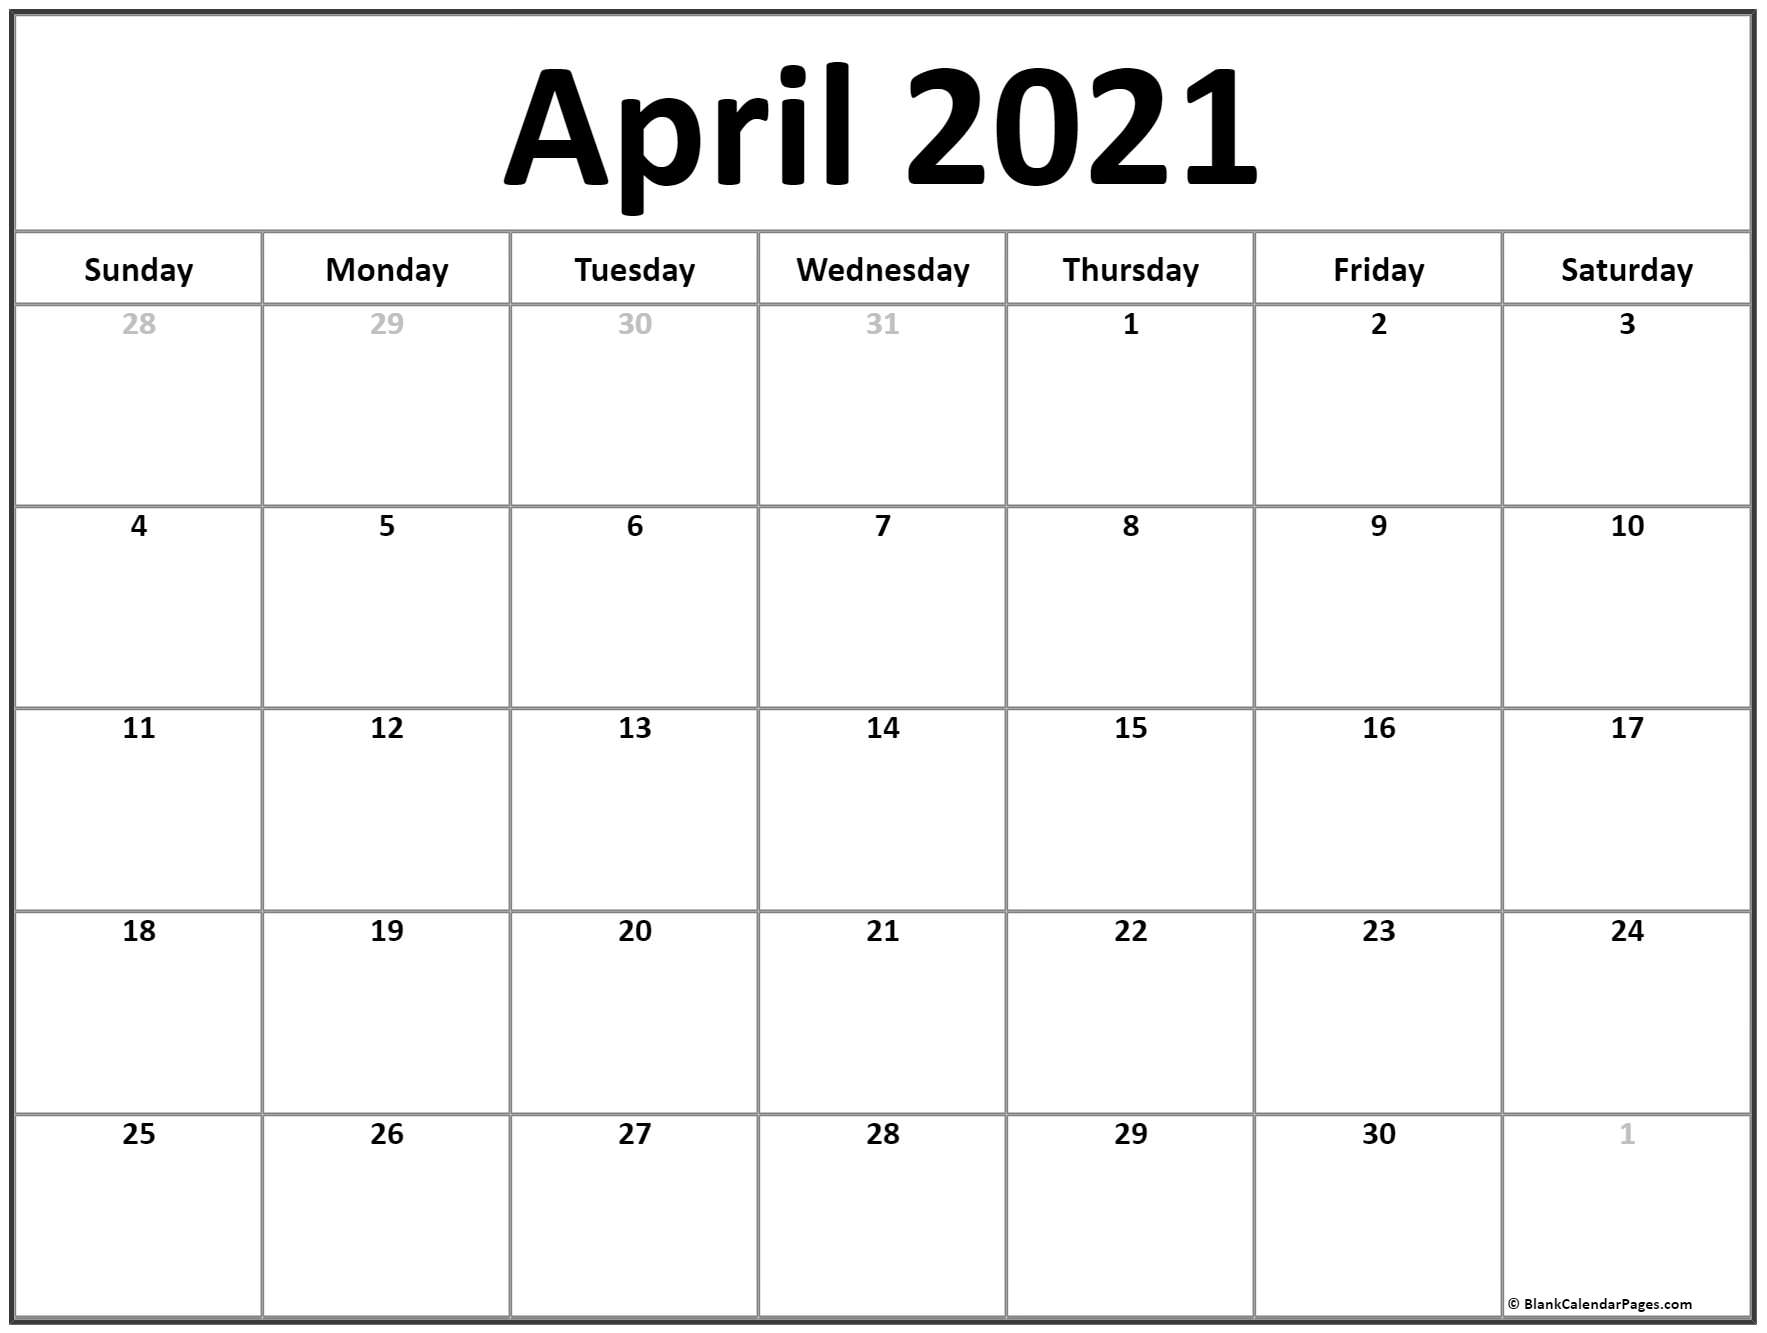 Blank April 2021 Calendar Template - Monthly Planner